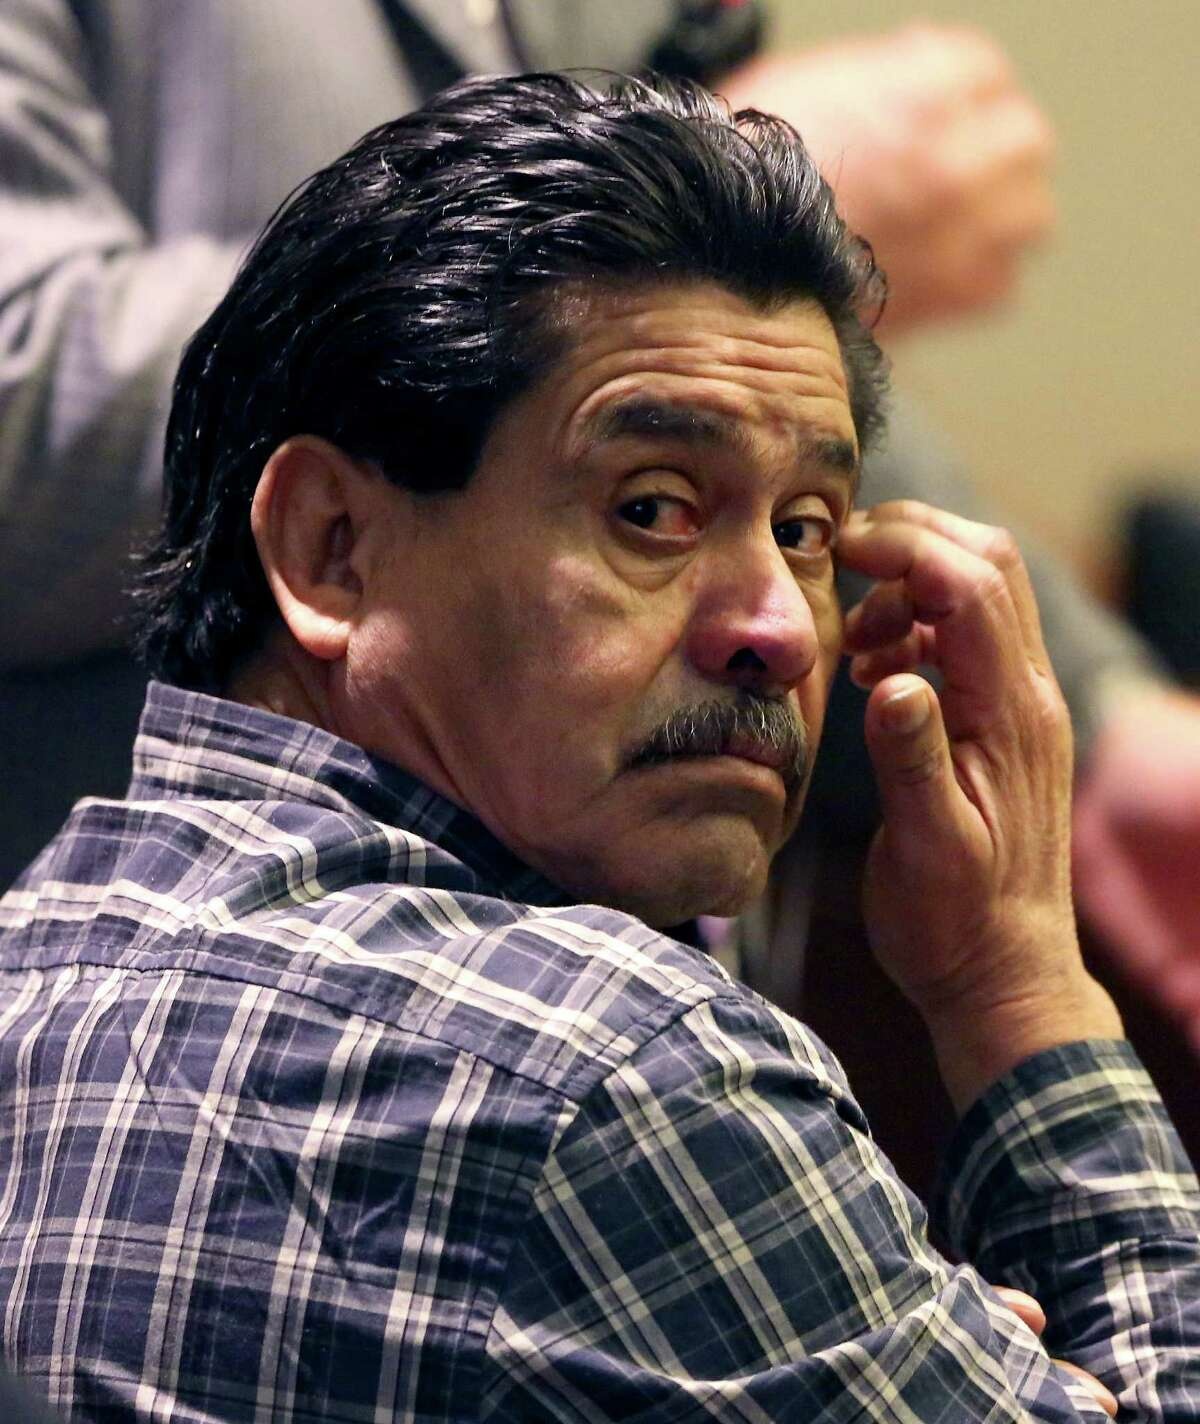 Juan Cavalos, 57, was arrested about a year after Cadido Estrada was found bleeding and with a faint pulse.